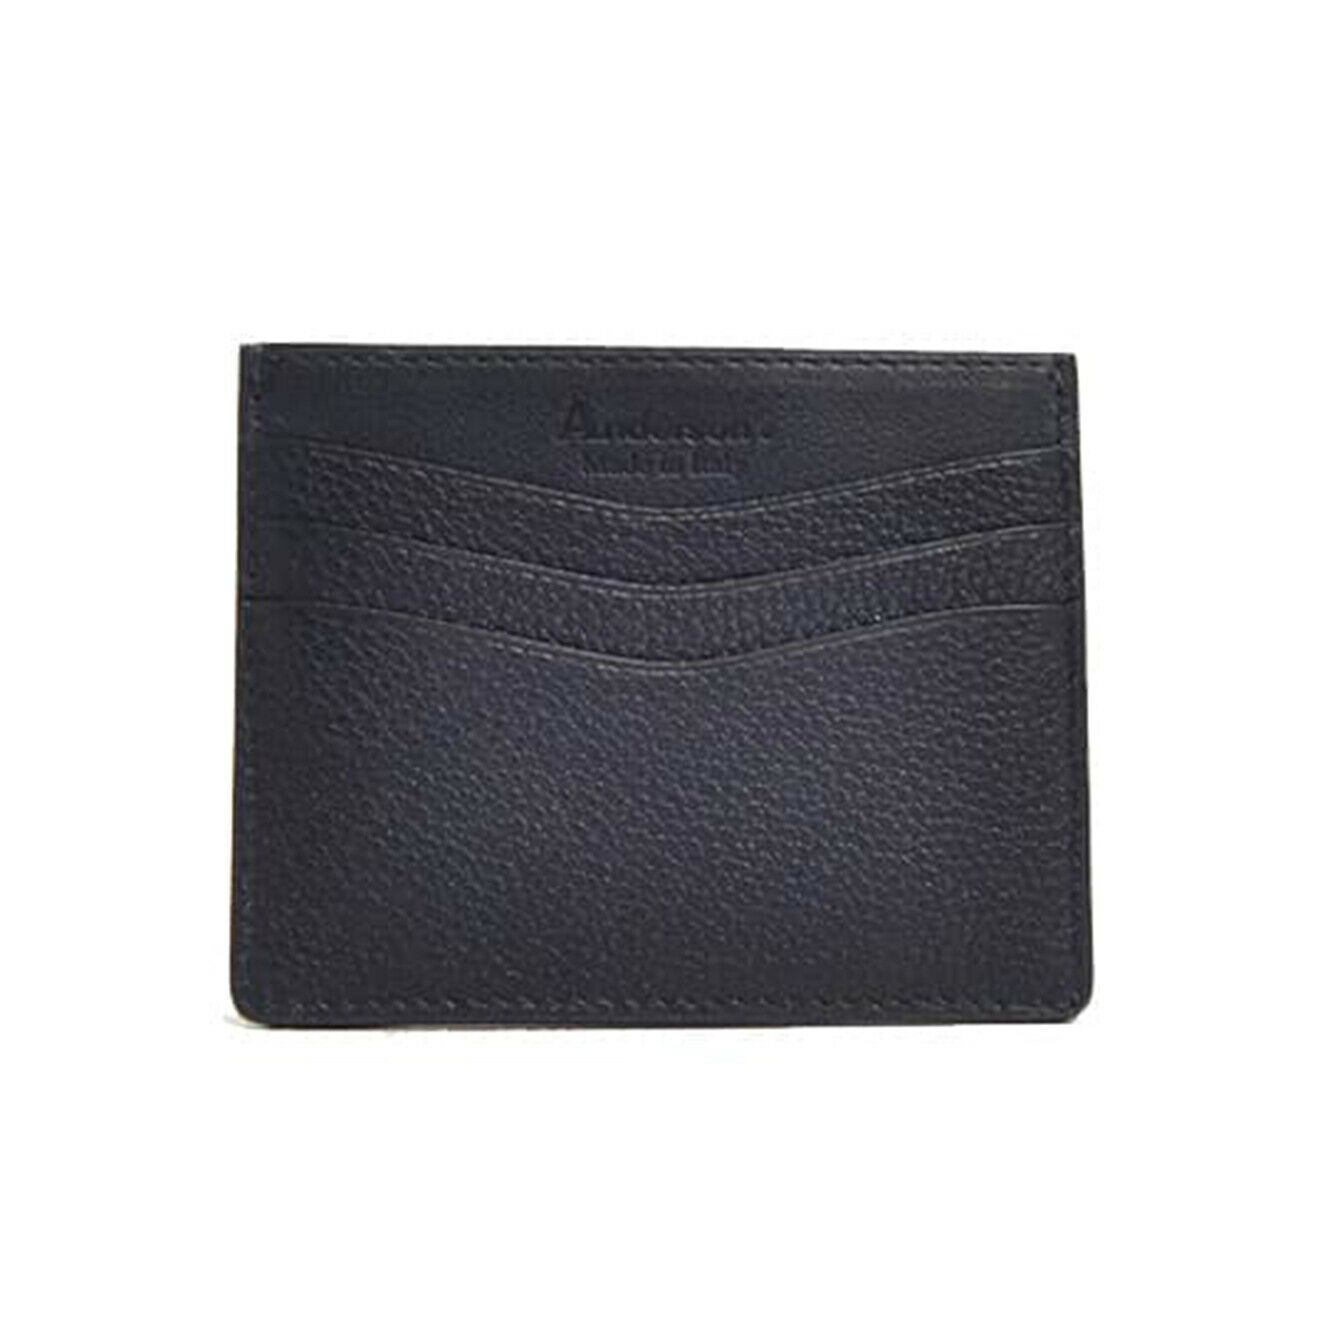 Andersons Leather Card Holder Navy - SALE!!